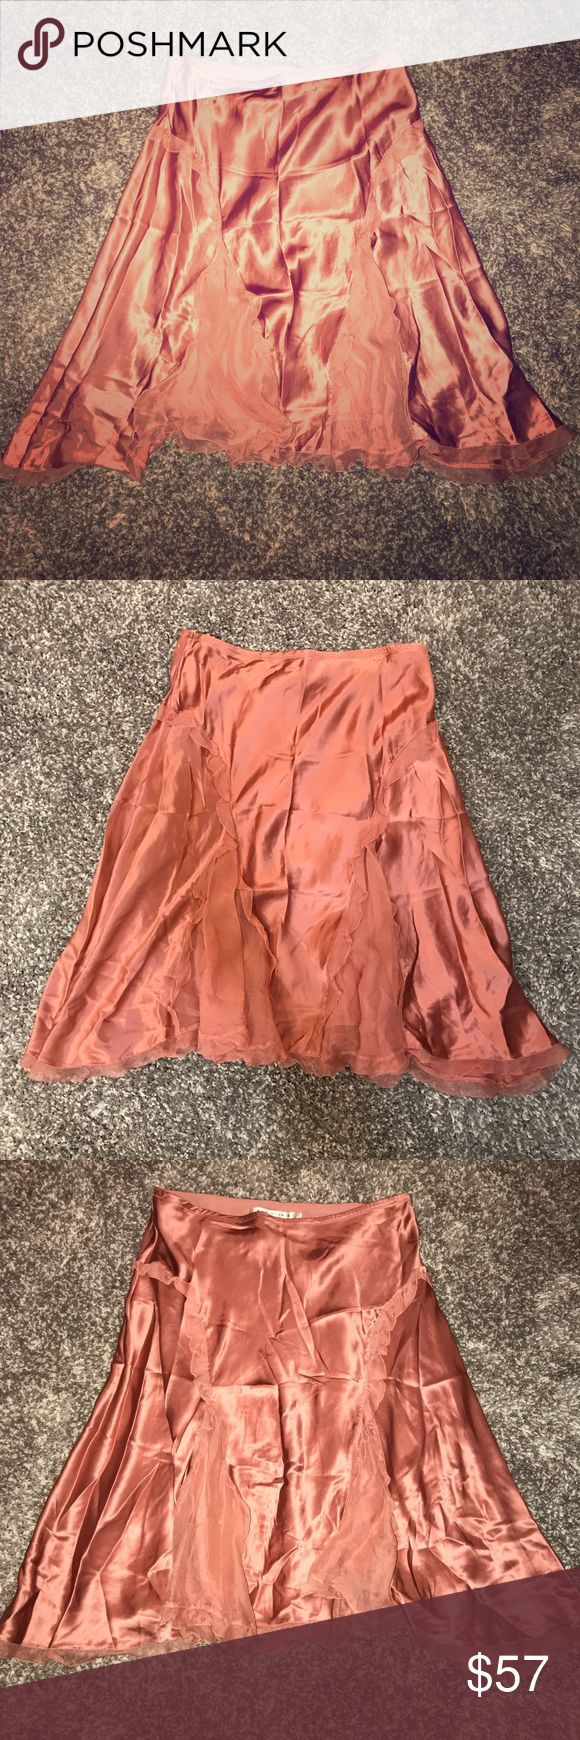 Max Studios Coral Satin Silk Skirt So cute with a pump and crop top Max Studio Skirts